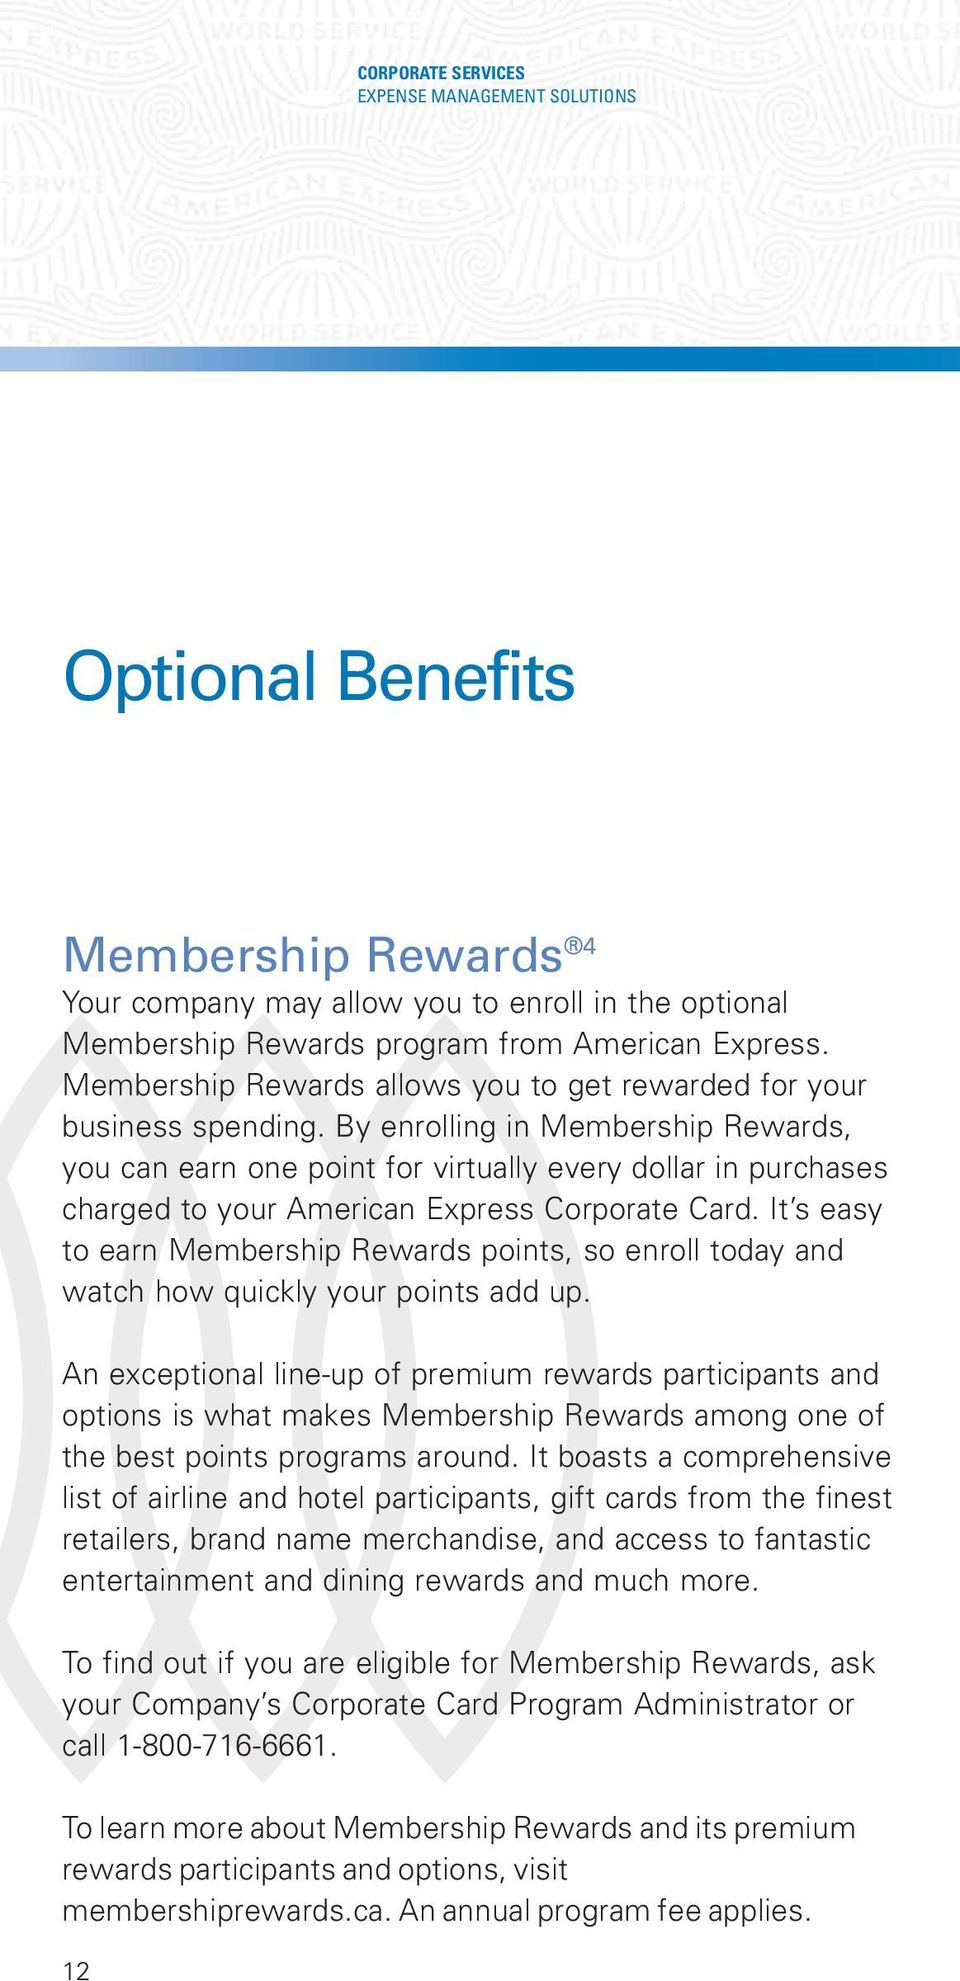 By enrolling in Membership Rewards, you can earn one point for virtually every dollar in purchases charged to your American Express Corporate Card.